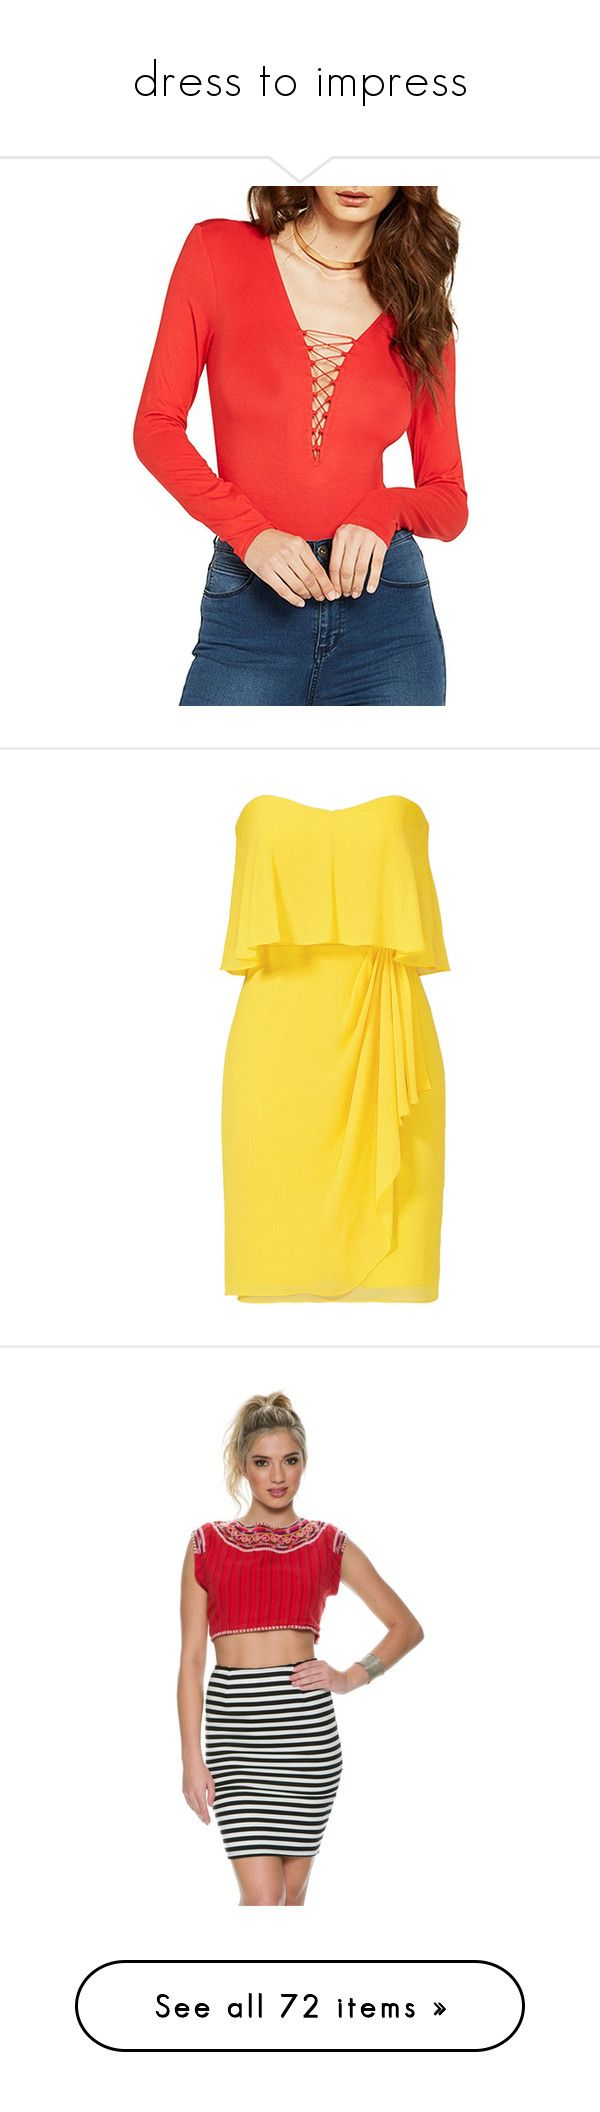 """dress to impress"" by spazzyds ❤ liked on Polyvore featuring intimates, shapewear, pepper, dresses, vestidos, yellow, strapless cocktail dresses, yellow ruffle dress, yellow strapless dress and cocktail draped dress"